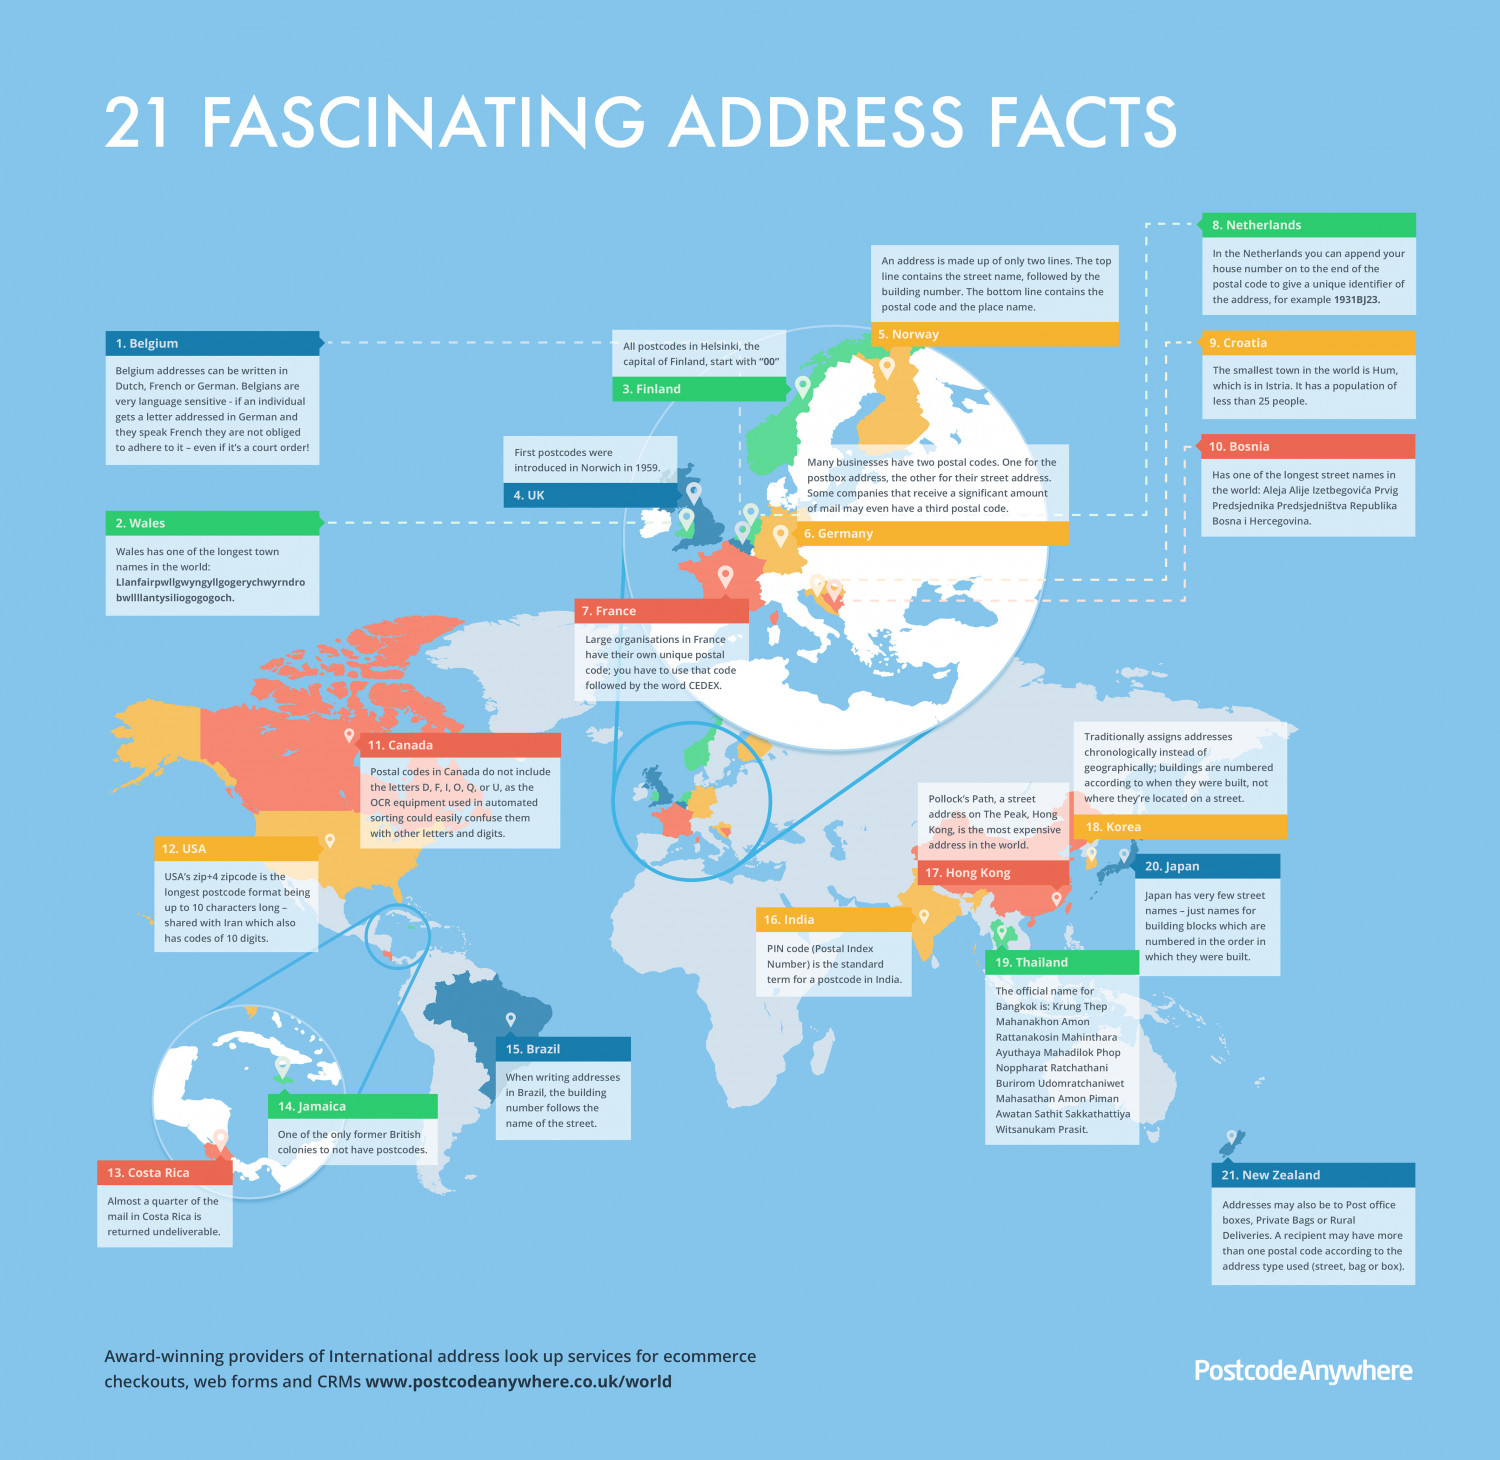 21 Fascinating Address Facts Infographic